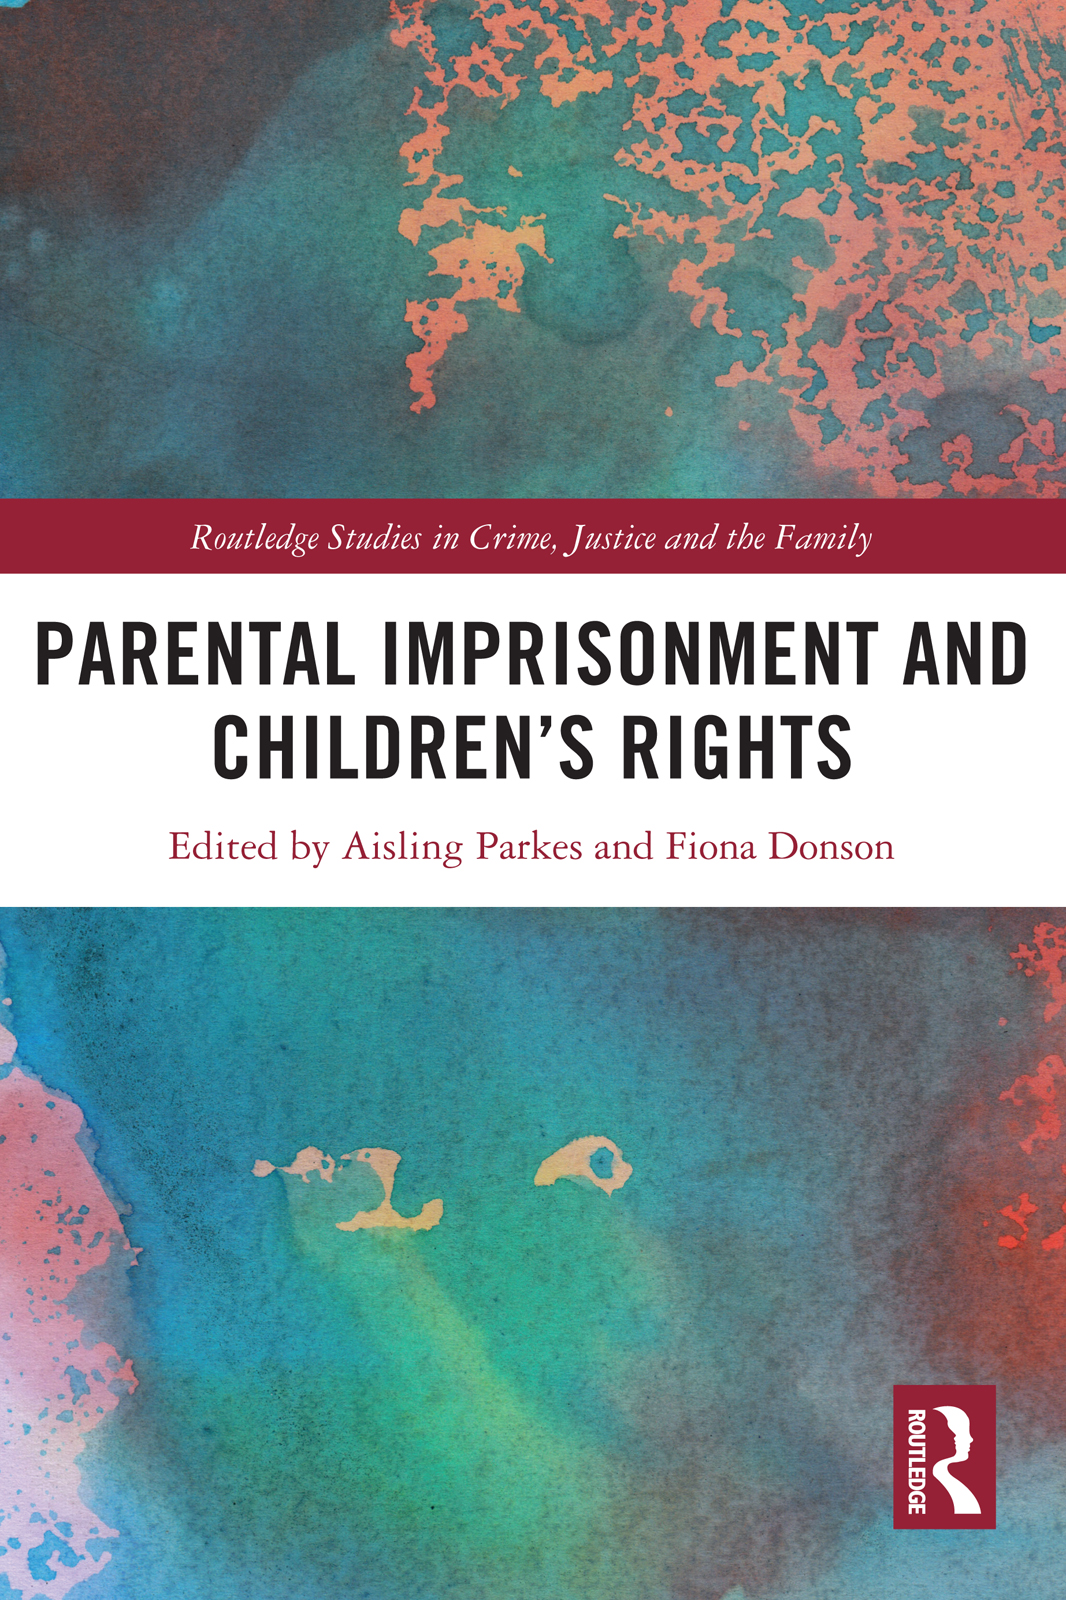 Prisons, families and human rights